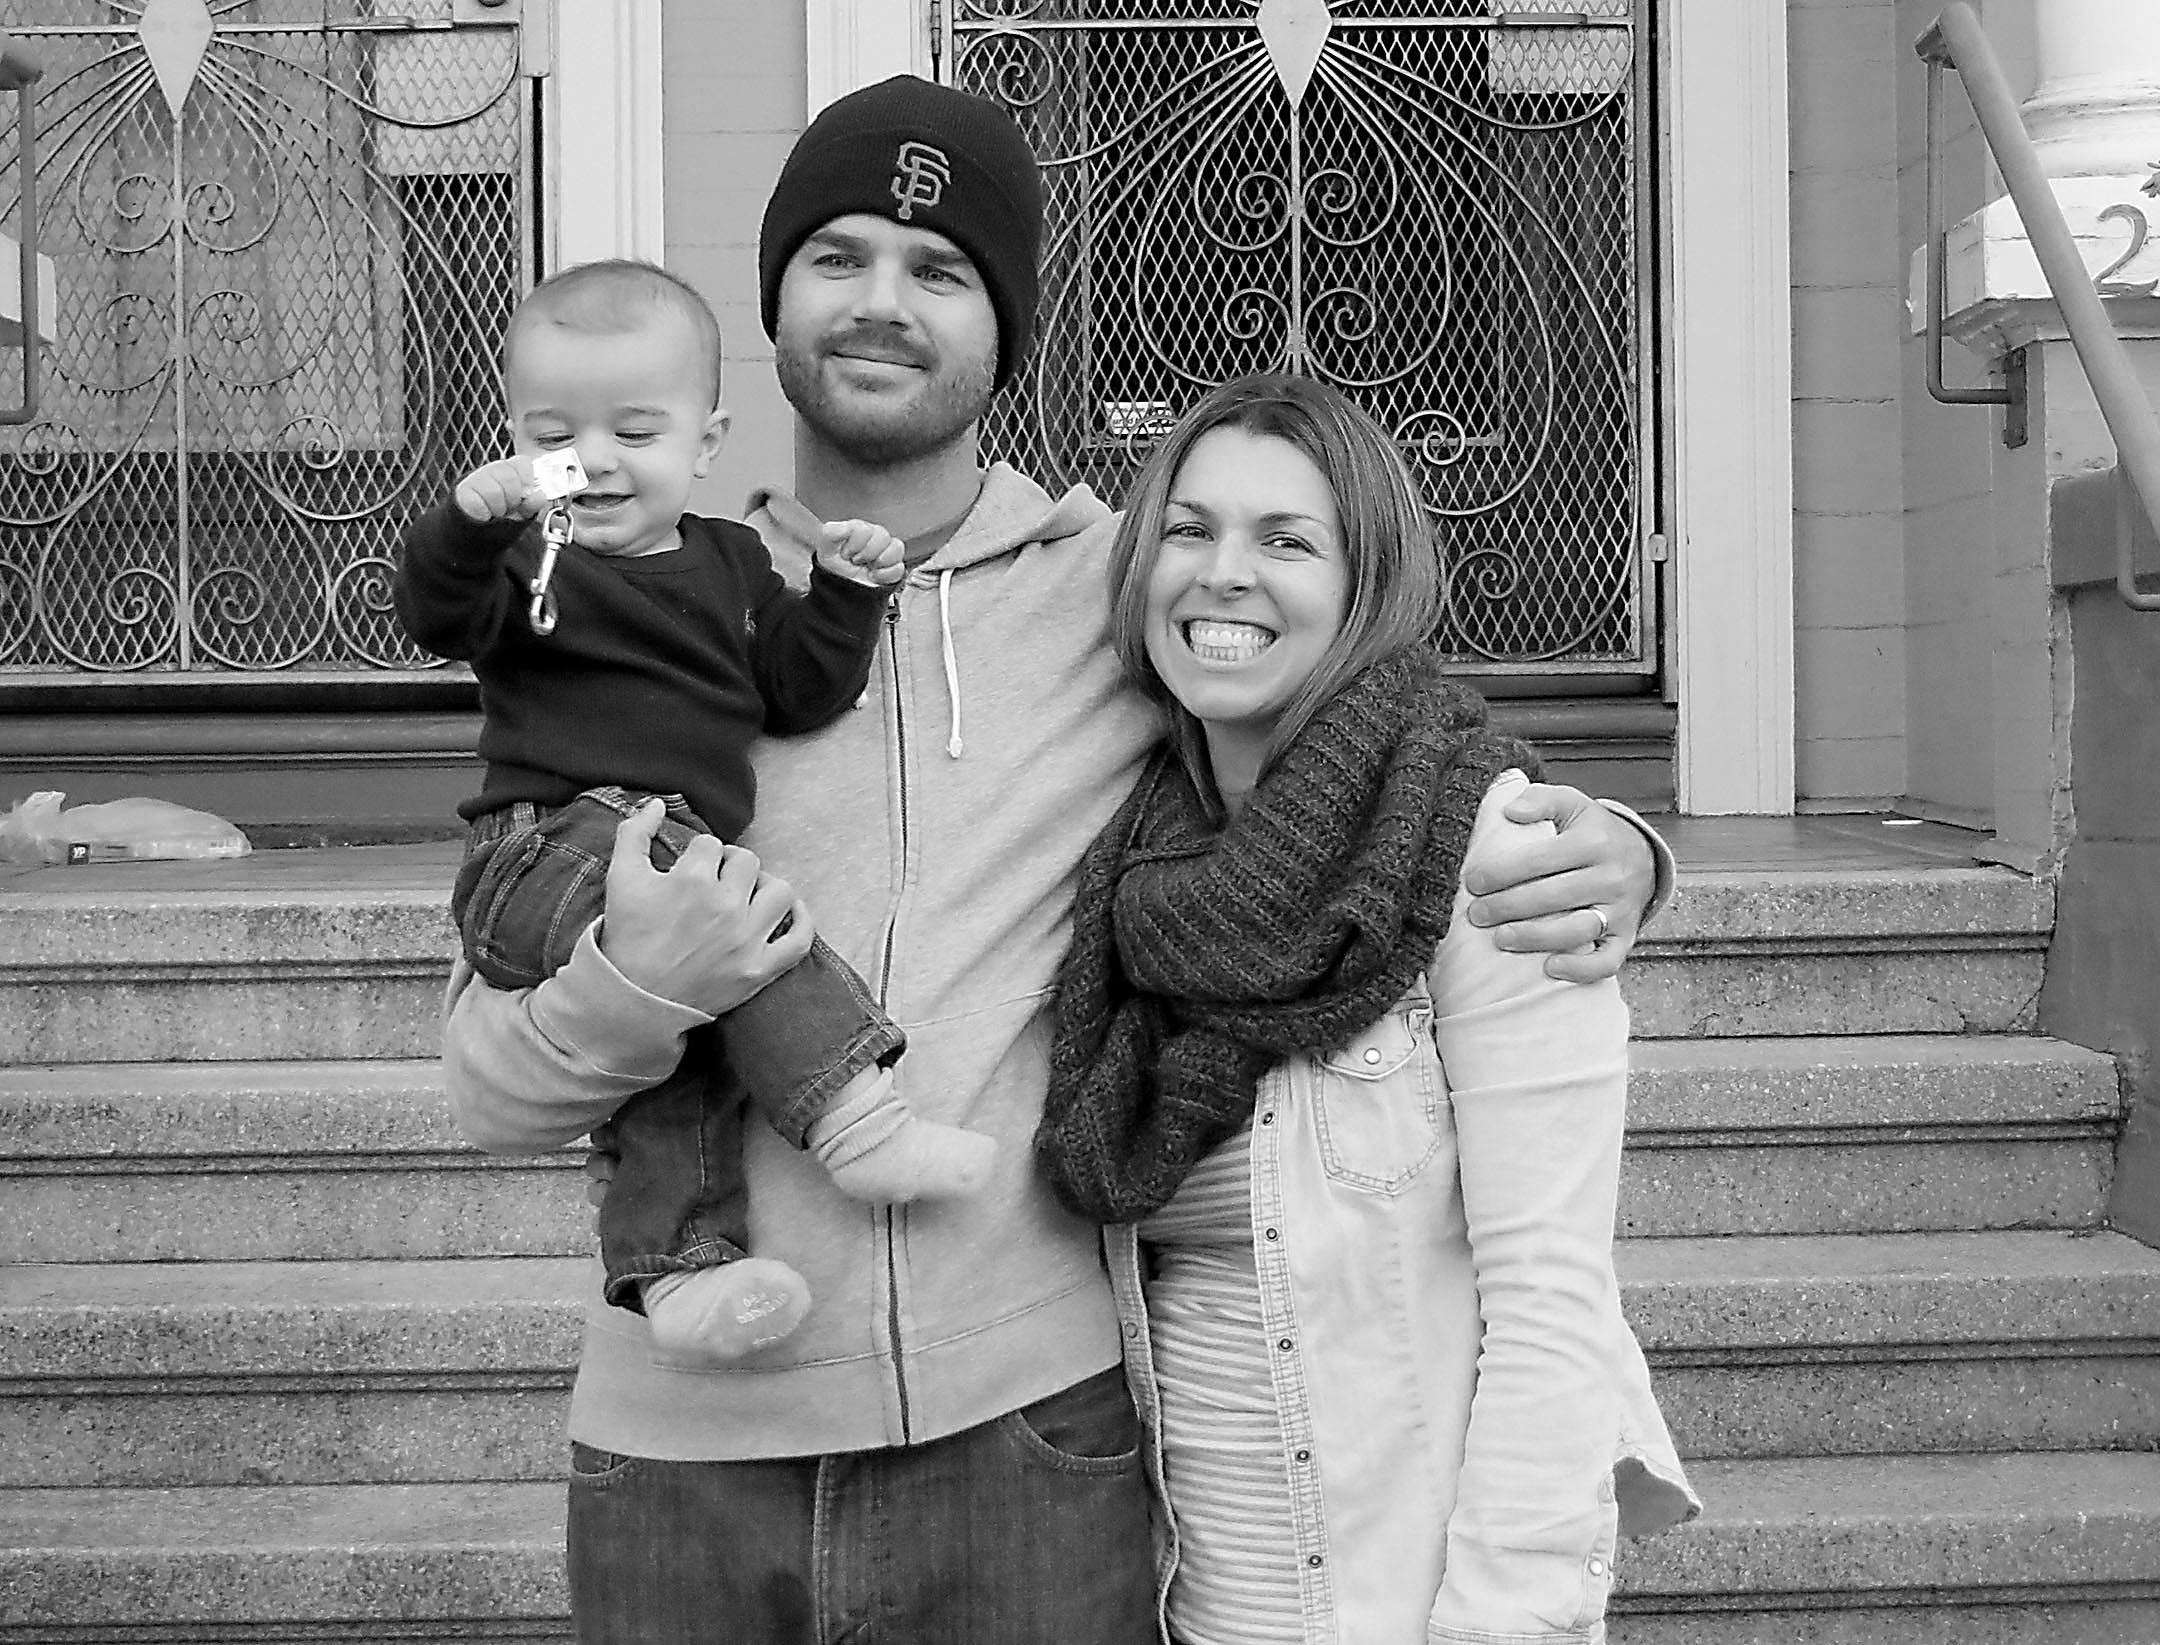 Faces of Richmond, consisted of a one day photo shoot in the neighborhood. Students roamed the neighborhood engaging with and photographing subjects. On the sidewalk we set up a photo studio where two photographers shot portraits against a white backdrop. I am submitting Faces of Richmond, a folder containing 53 black and white images from the neighborhood shoot. #ThroughOurEyes